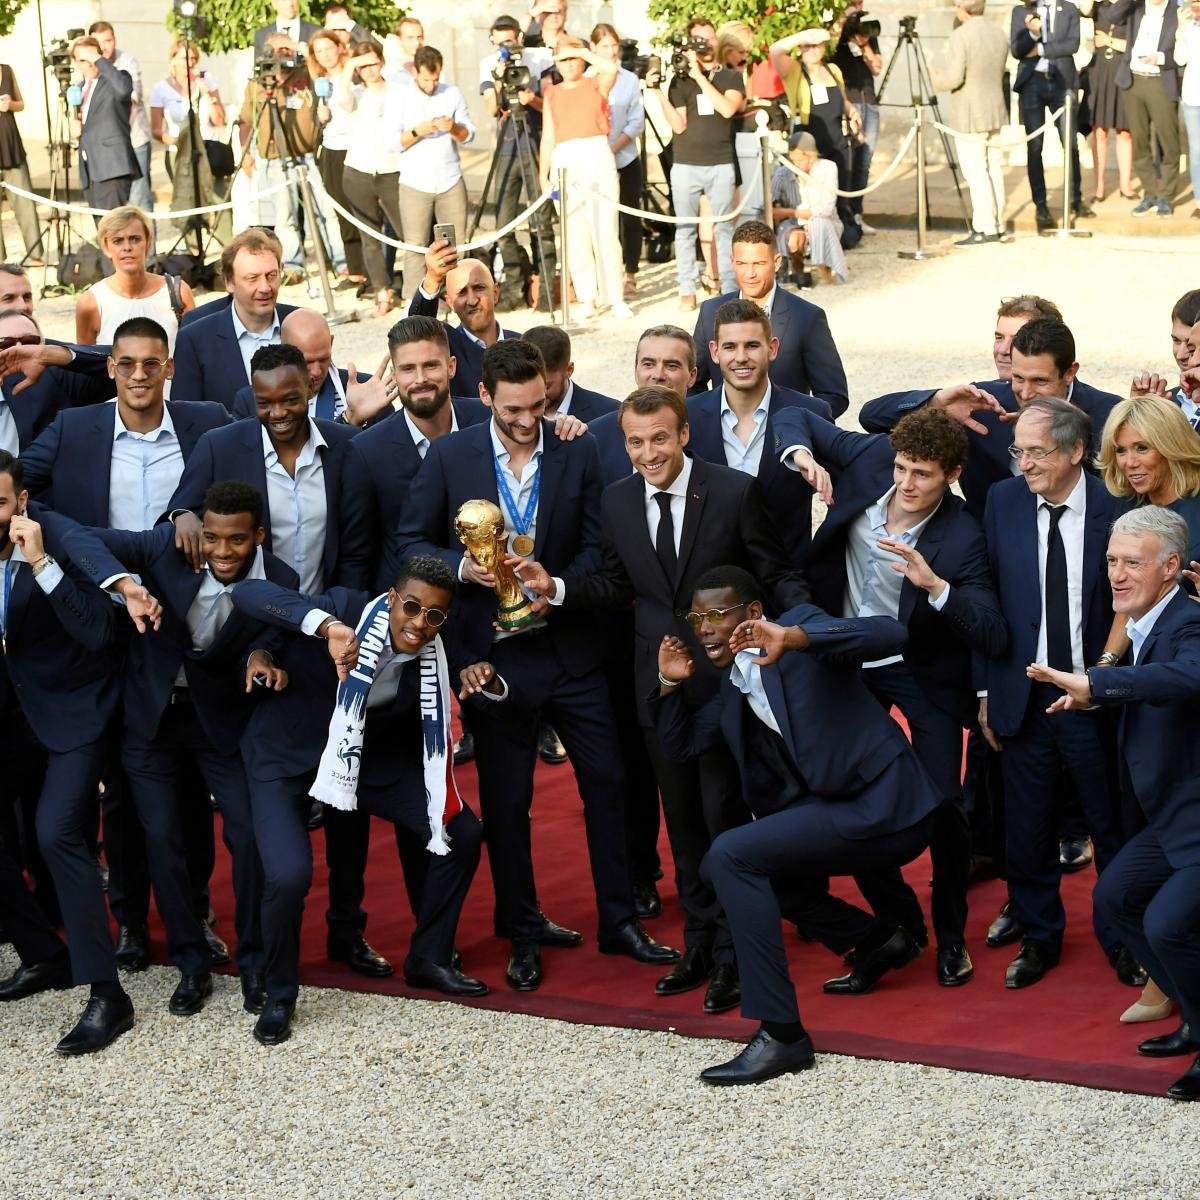 World Cup Winners France Top FIFA Rankings, England Rise, Germany Drop to 15th